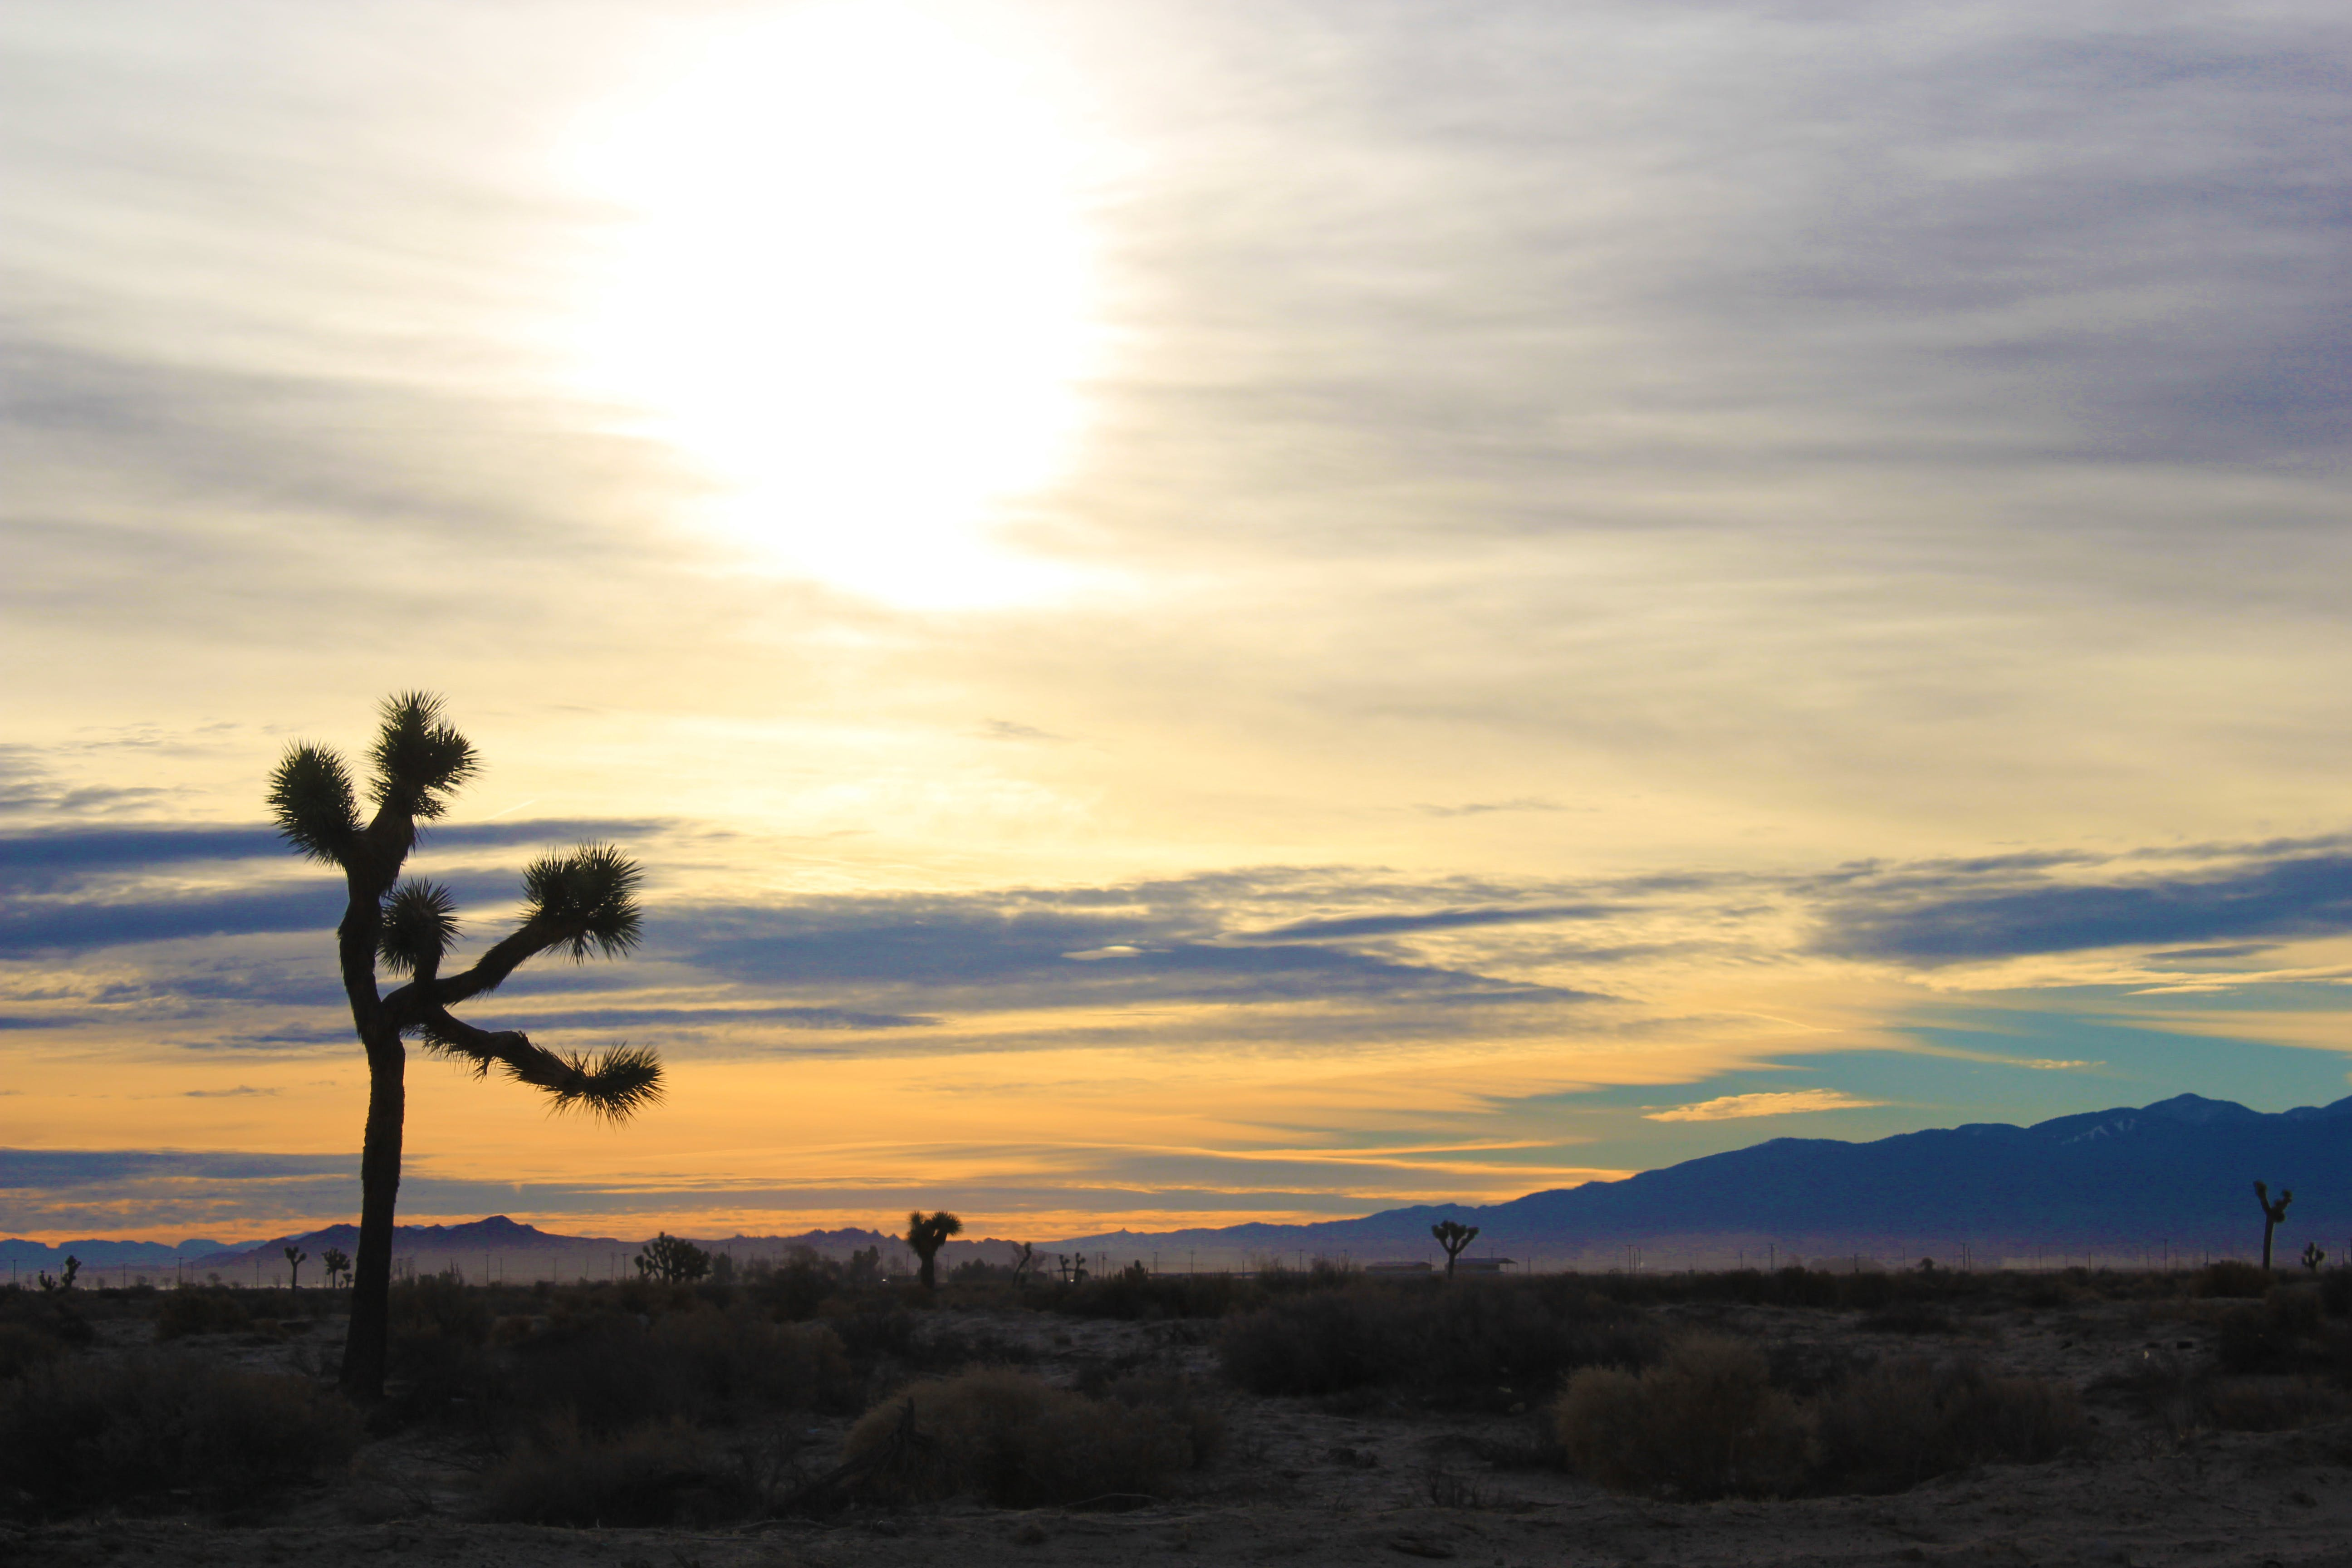 Free stock photo of sunset, joshua tree, antelope valley